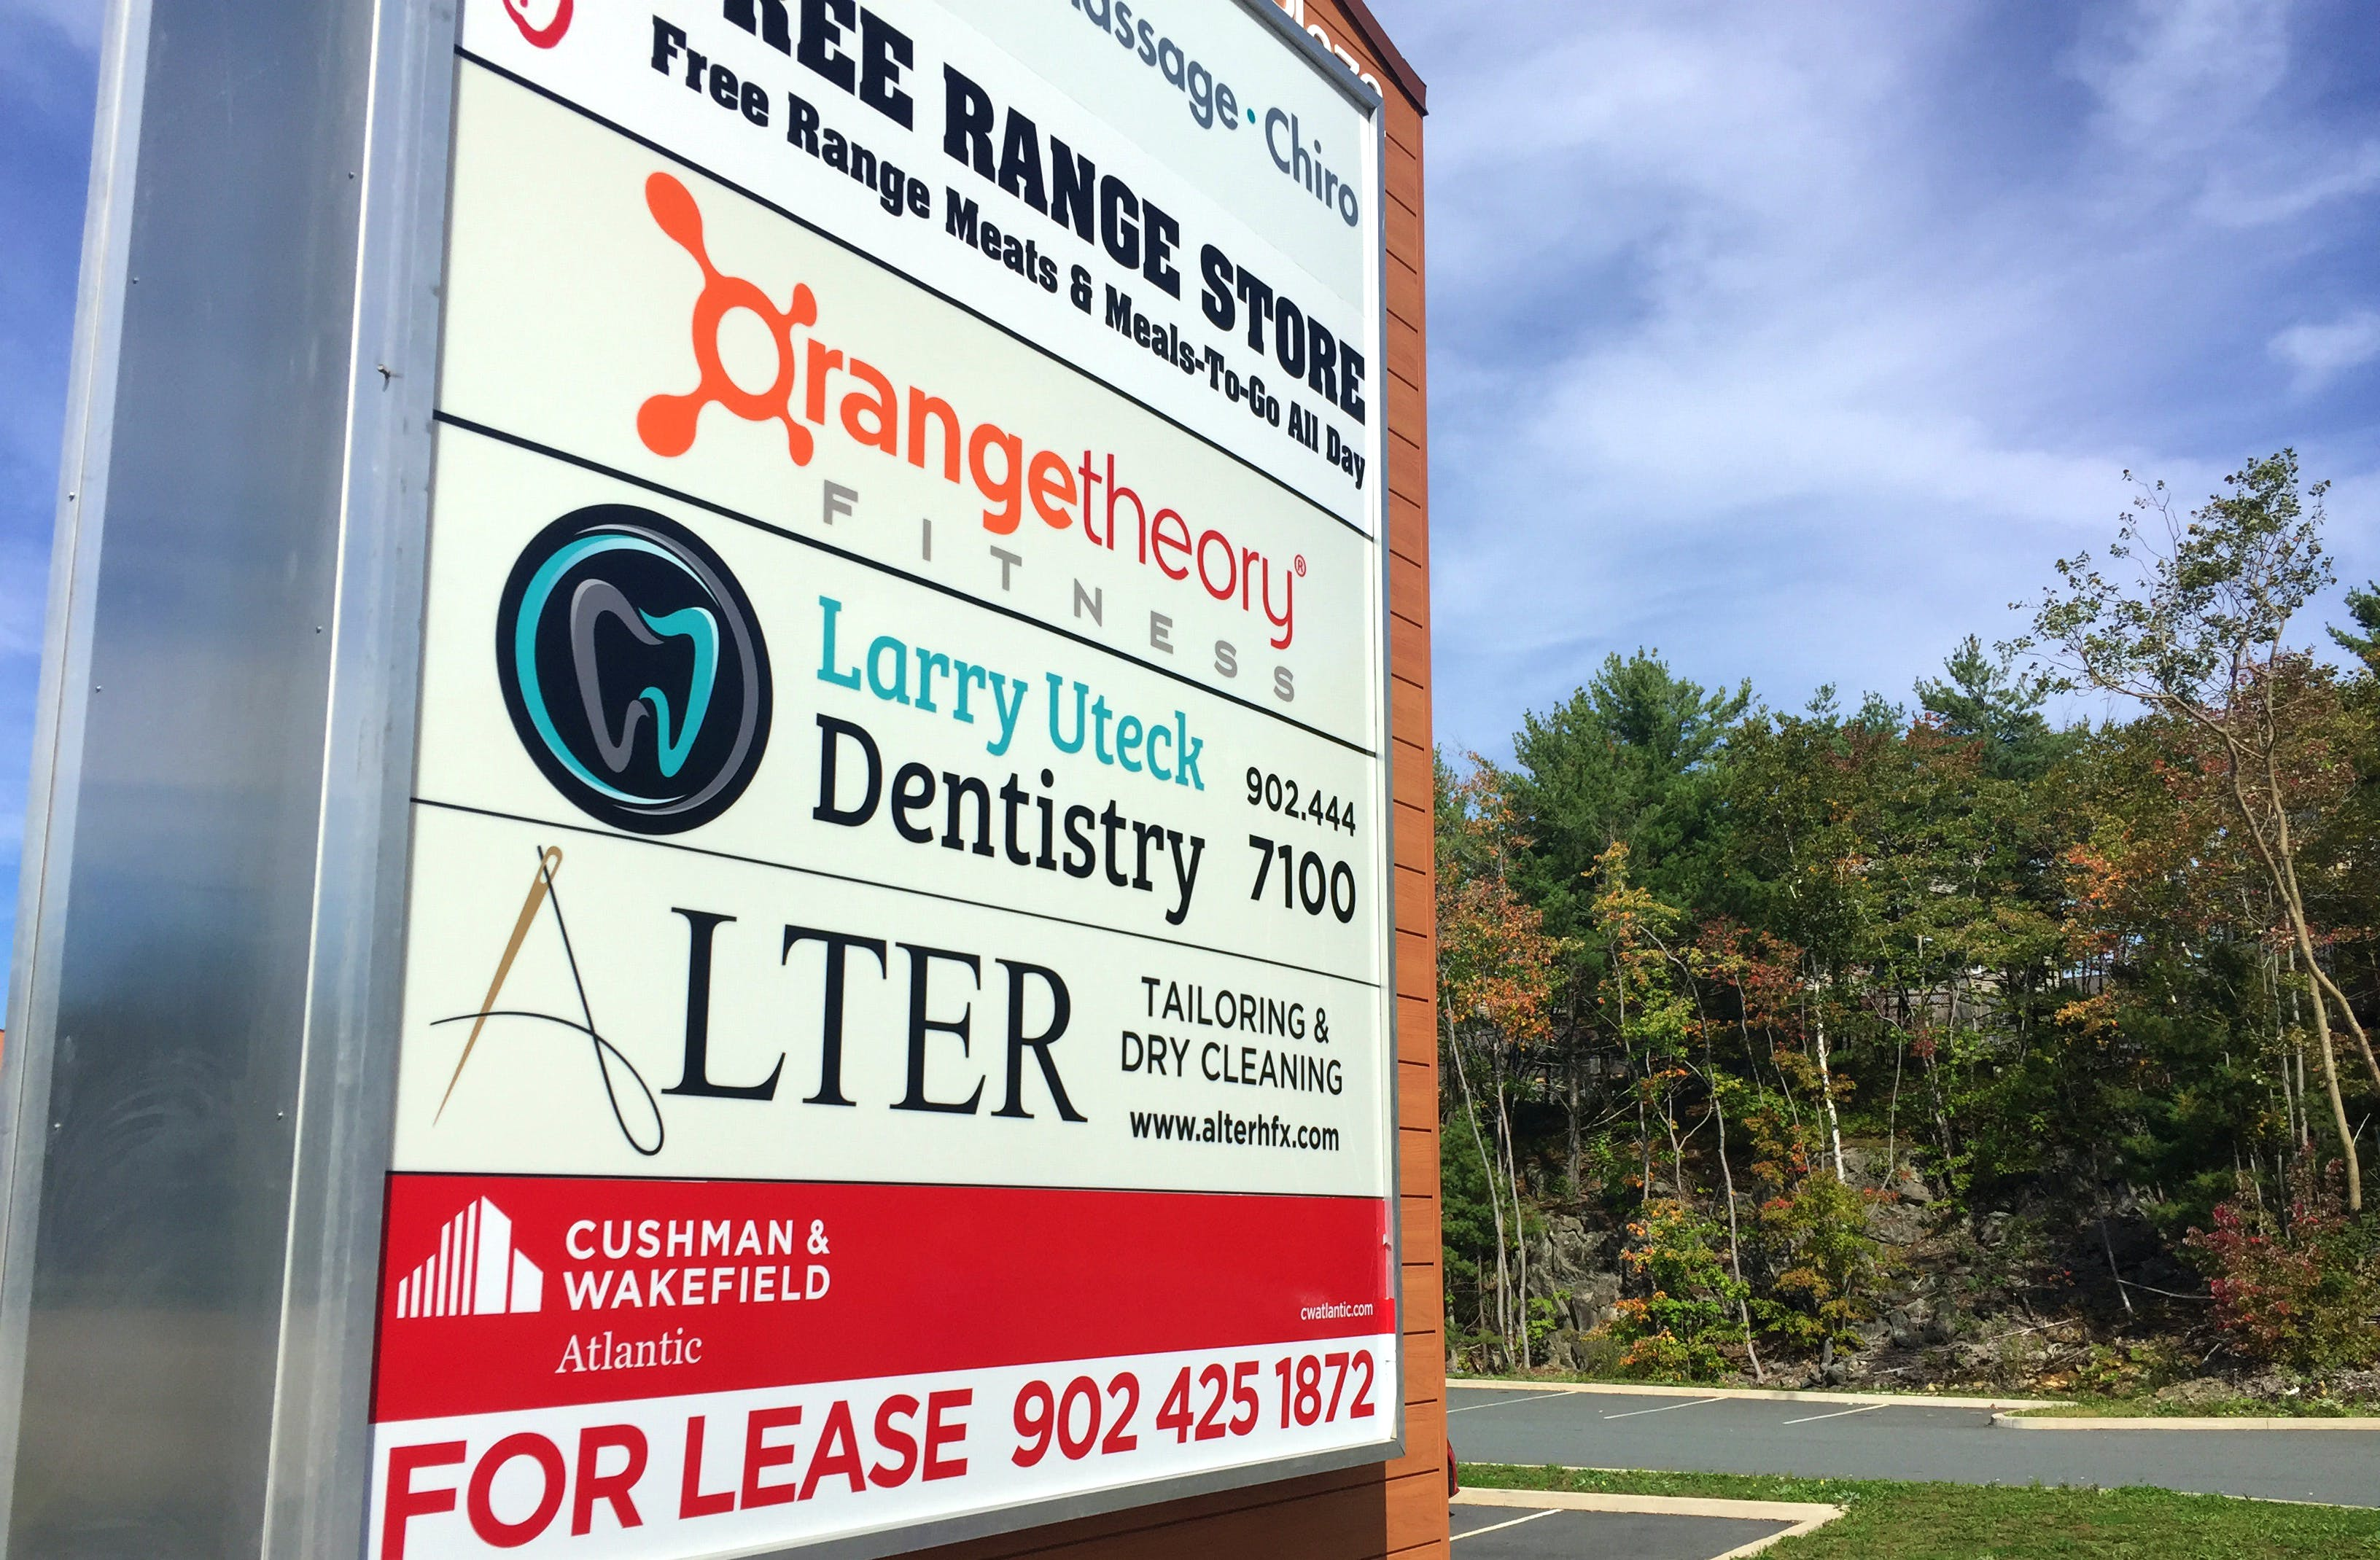 Halifax, unlike most of the country, has seen a drop in commercial real estate vacancies. Properties like the Kearney Lake Plaza, which next month will add the Free Range Pub, are thriving.